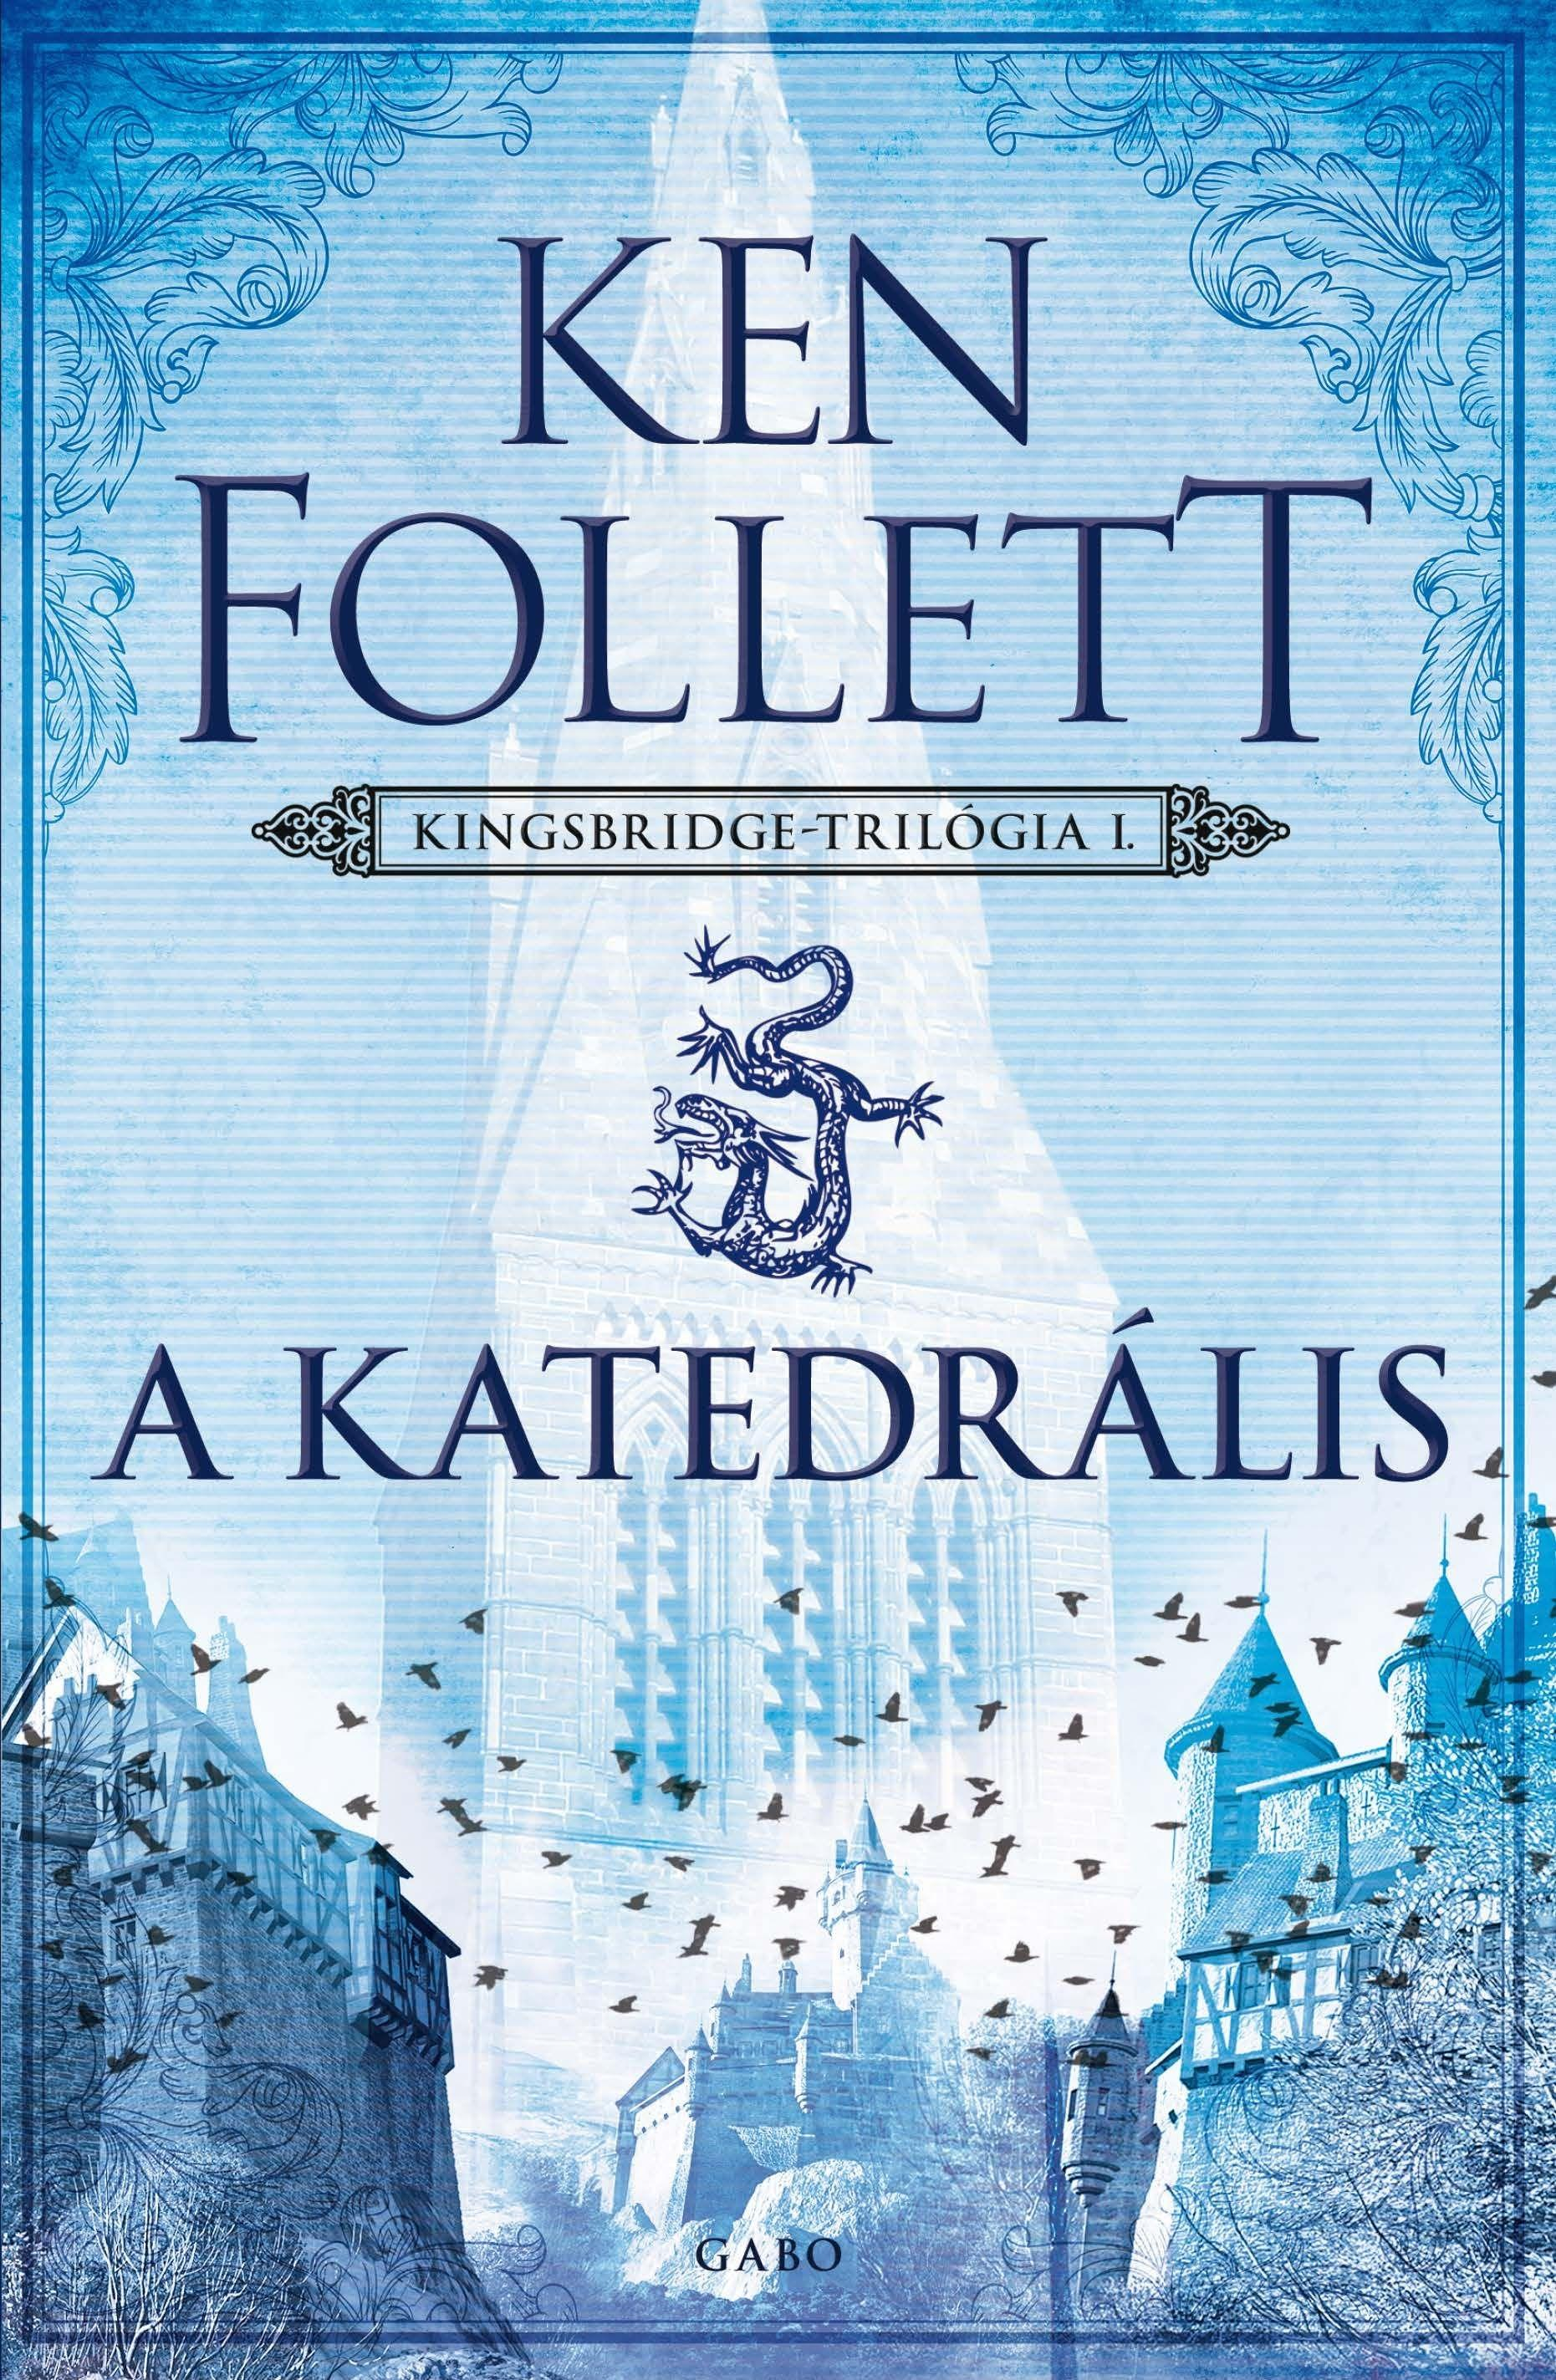 FOLLETT, KEN - A KATEDRÁLIS - KINGSBRIDGE-TRILÓGIA 1.